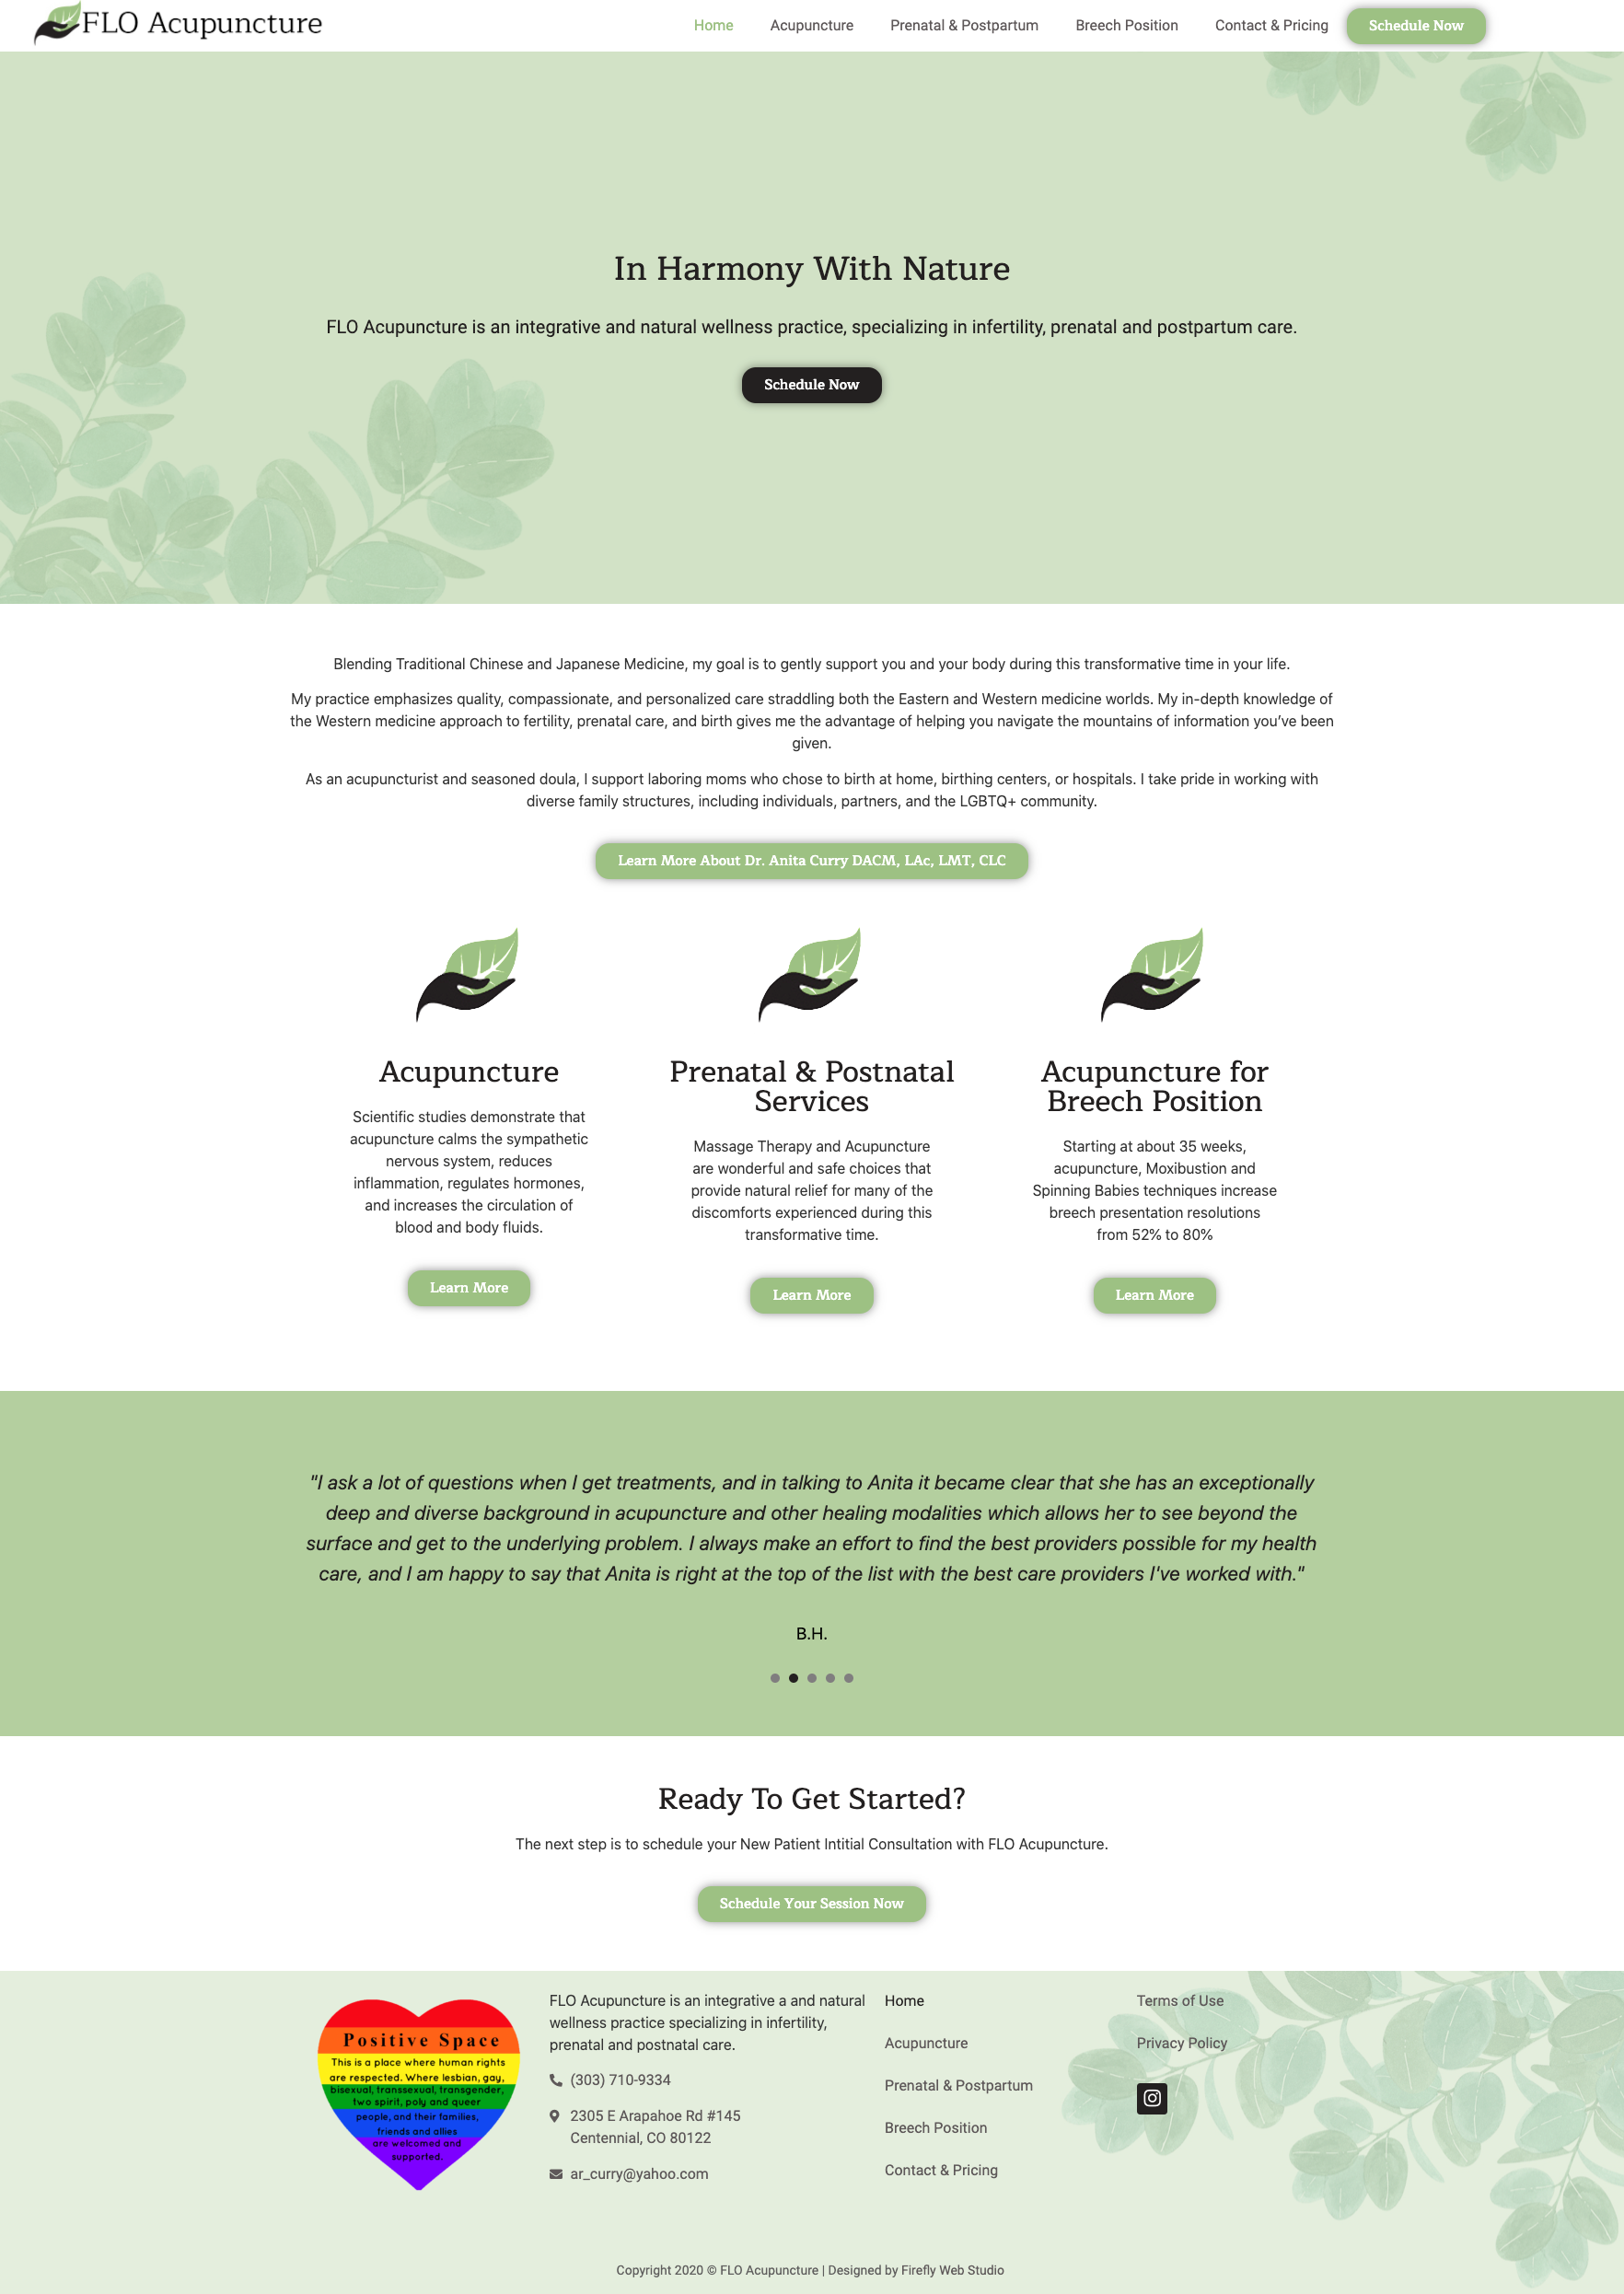 acupuncture website design for homepage